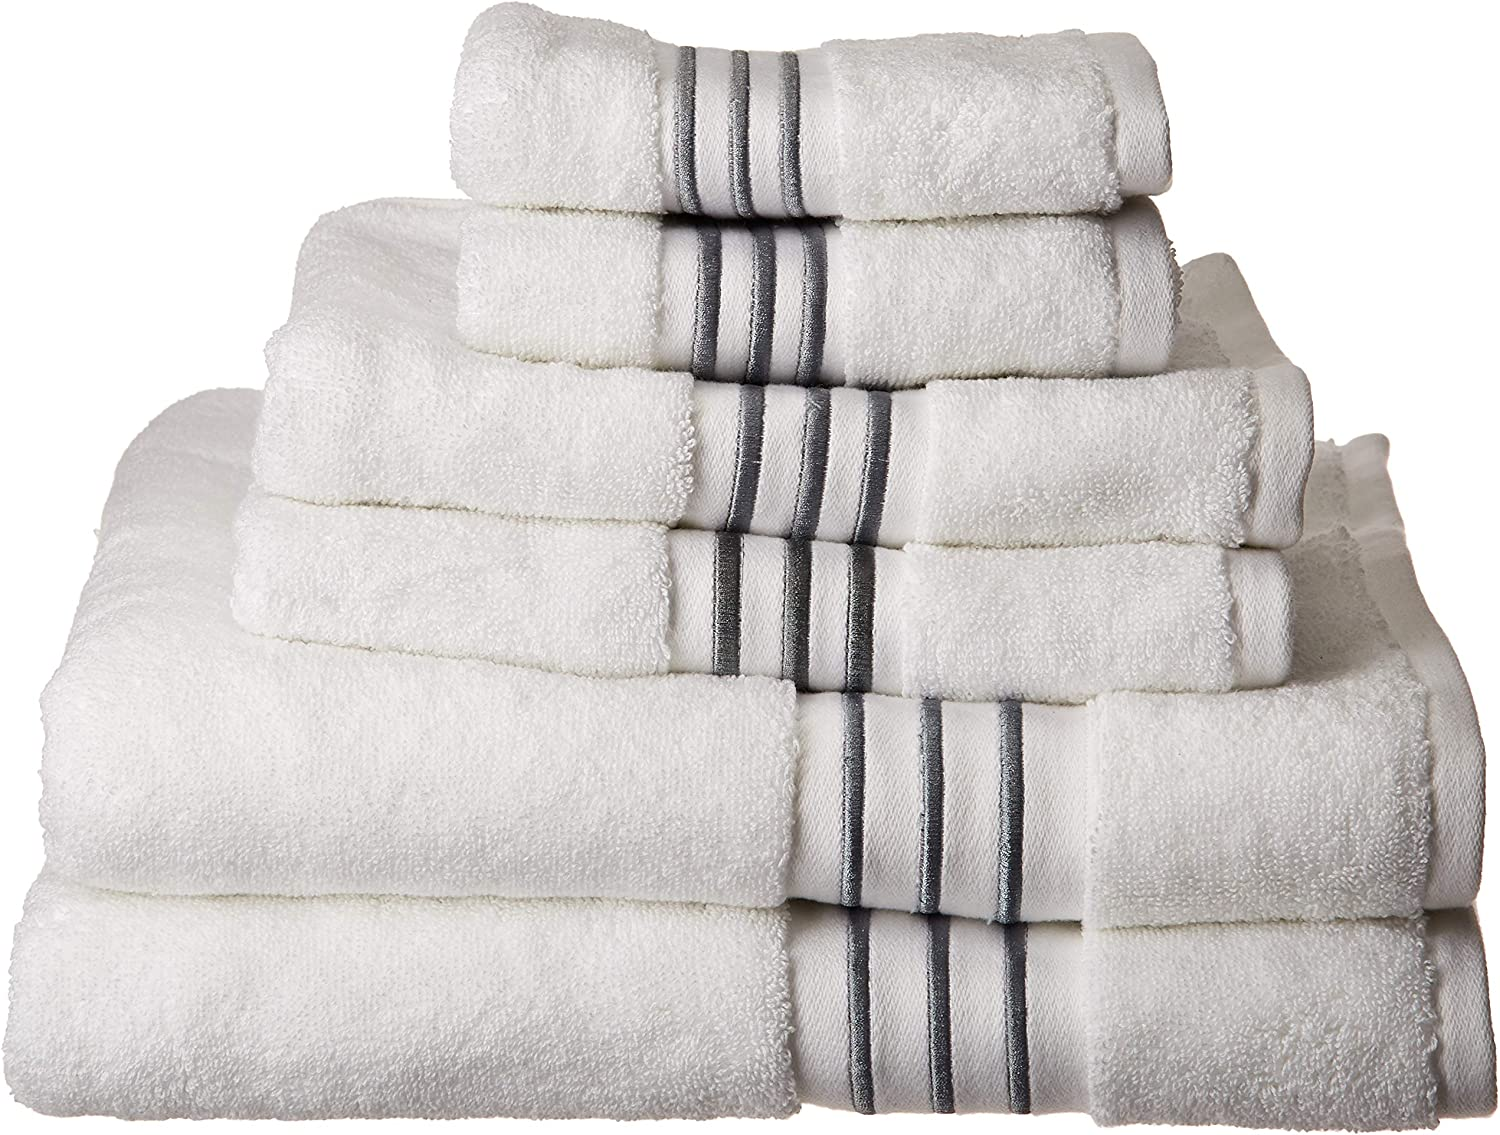 Elloy 700Gsm Cotton Bathroom Towels , Striped Elegant Highly Absorbent Bath Towel Set , 6-Piece Include 2 Bath Towels, 2 Hand Towels & 2 Wash Towels , White Grey